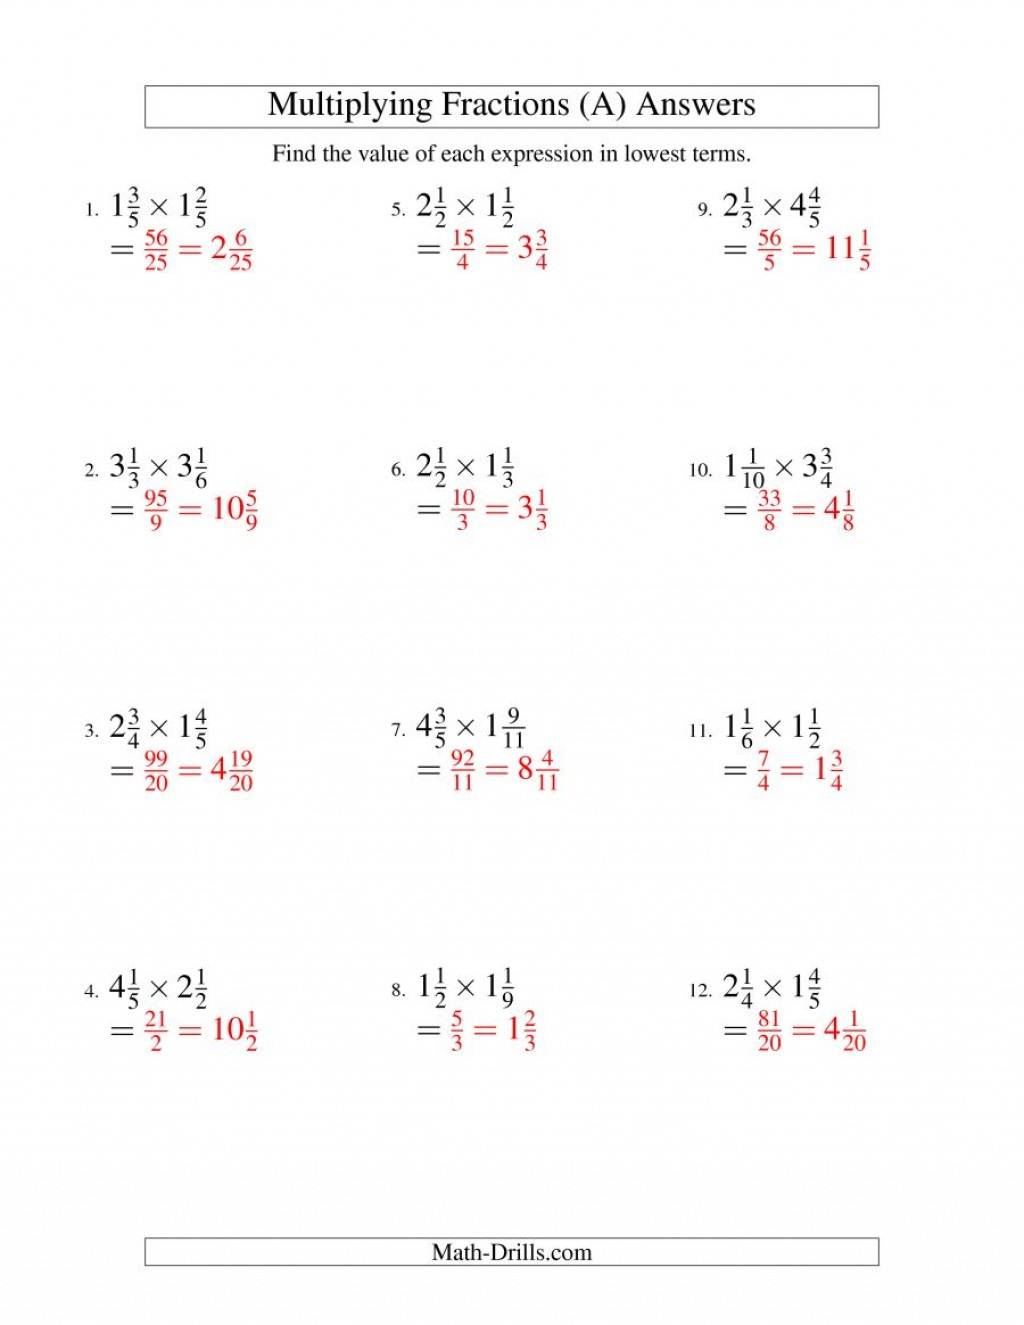 006 Fraction Math Worksheet Multiplying Mixed Fractions